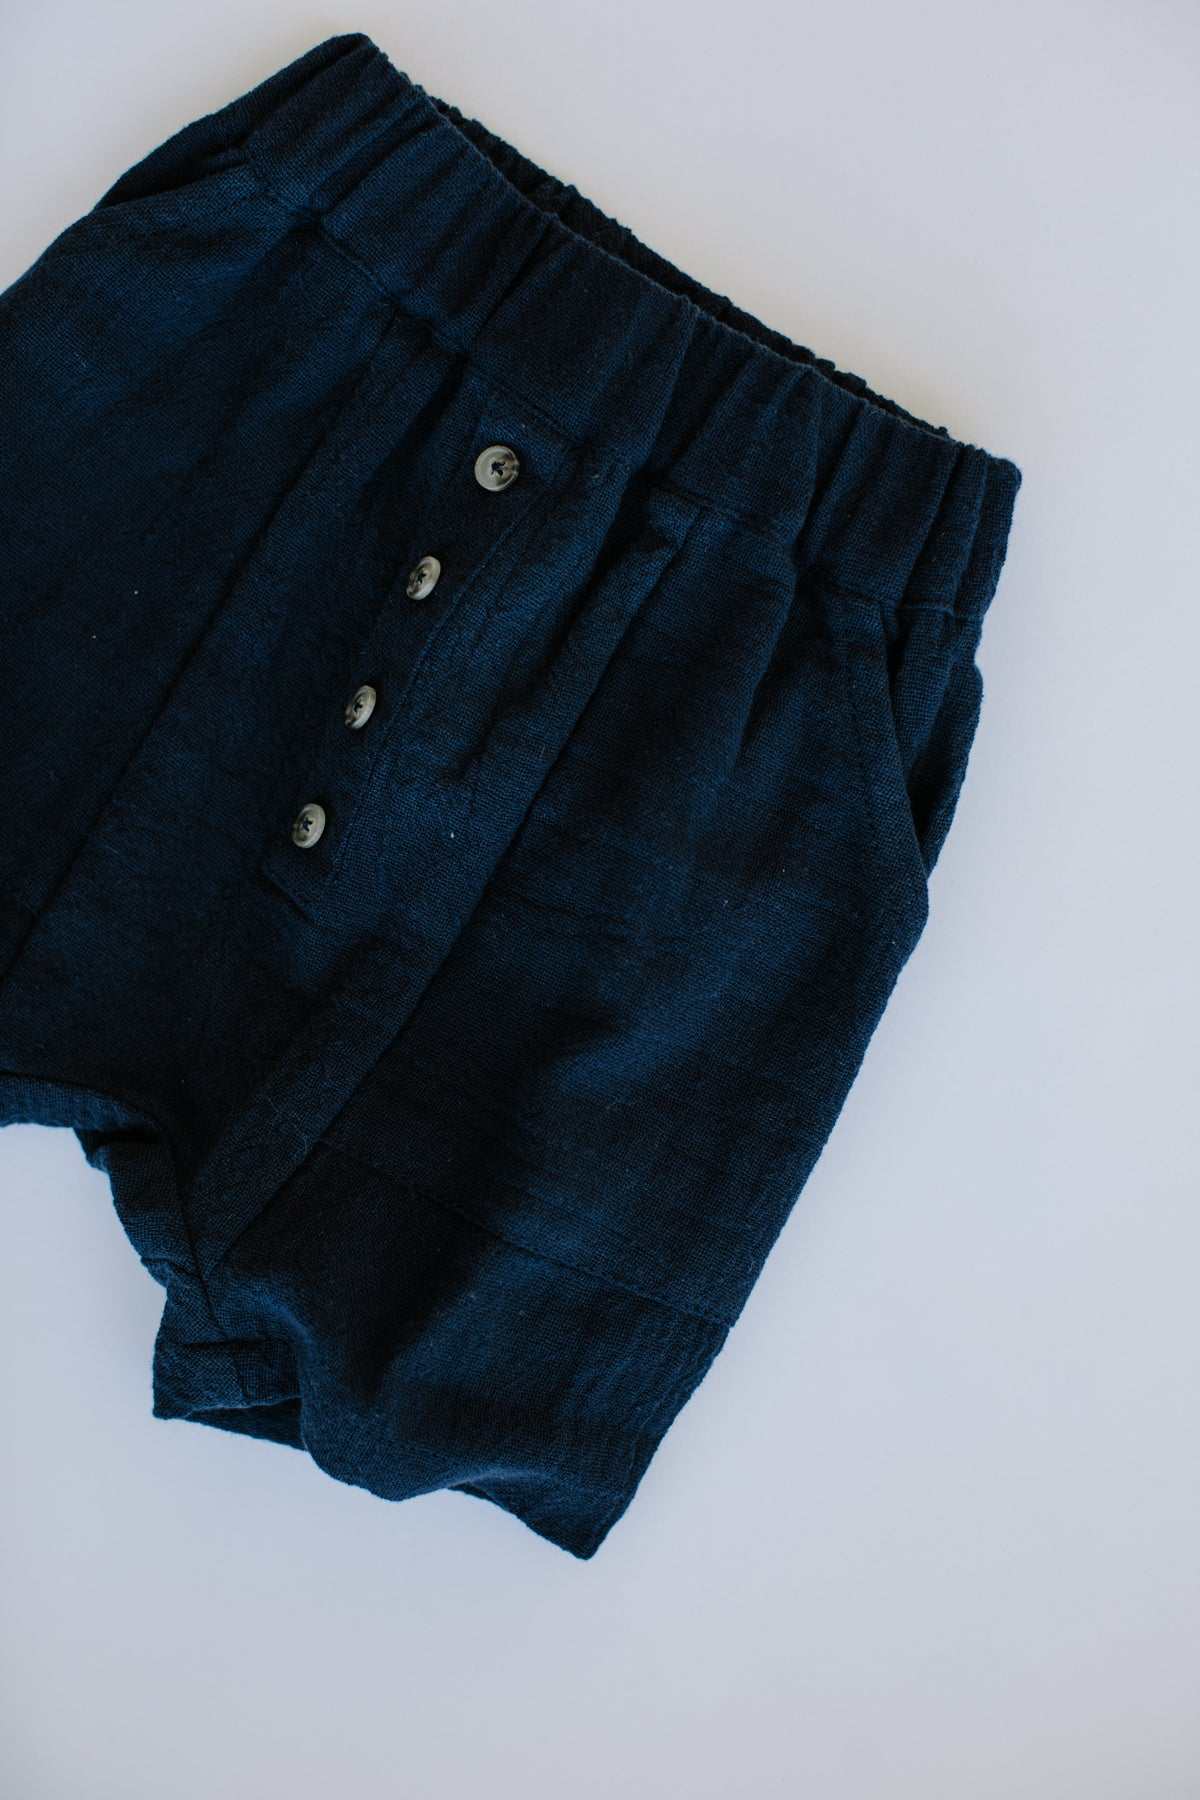 the daily short - navy